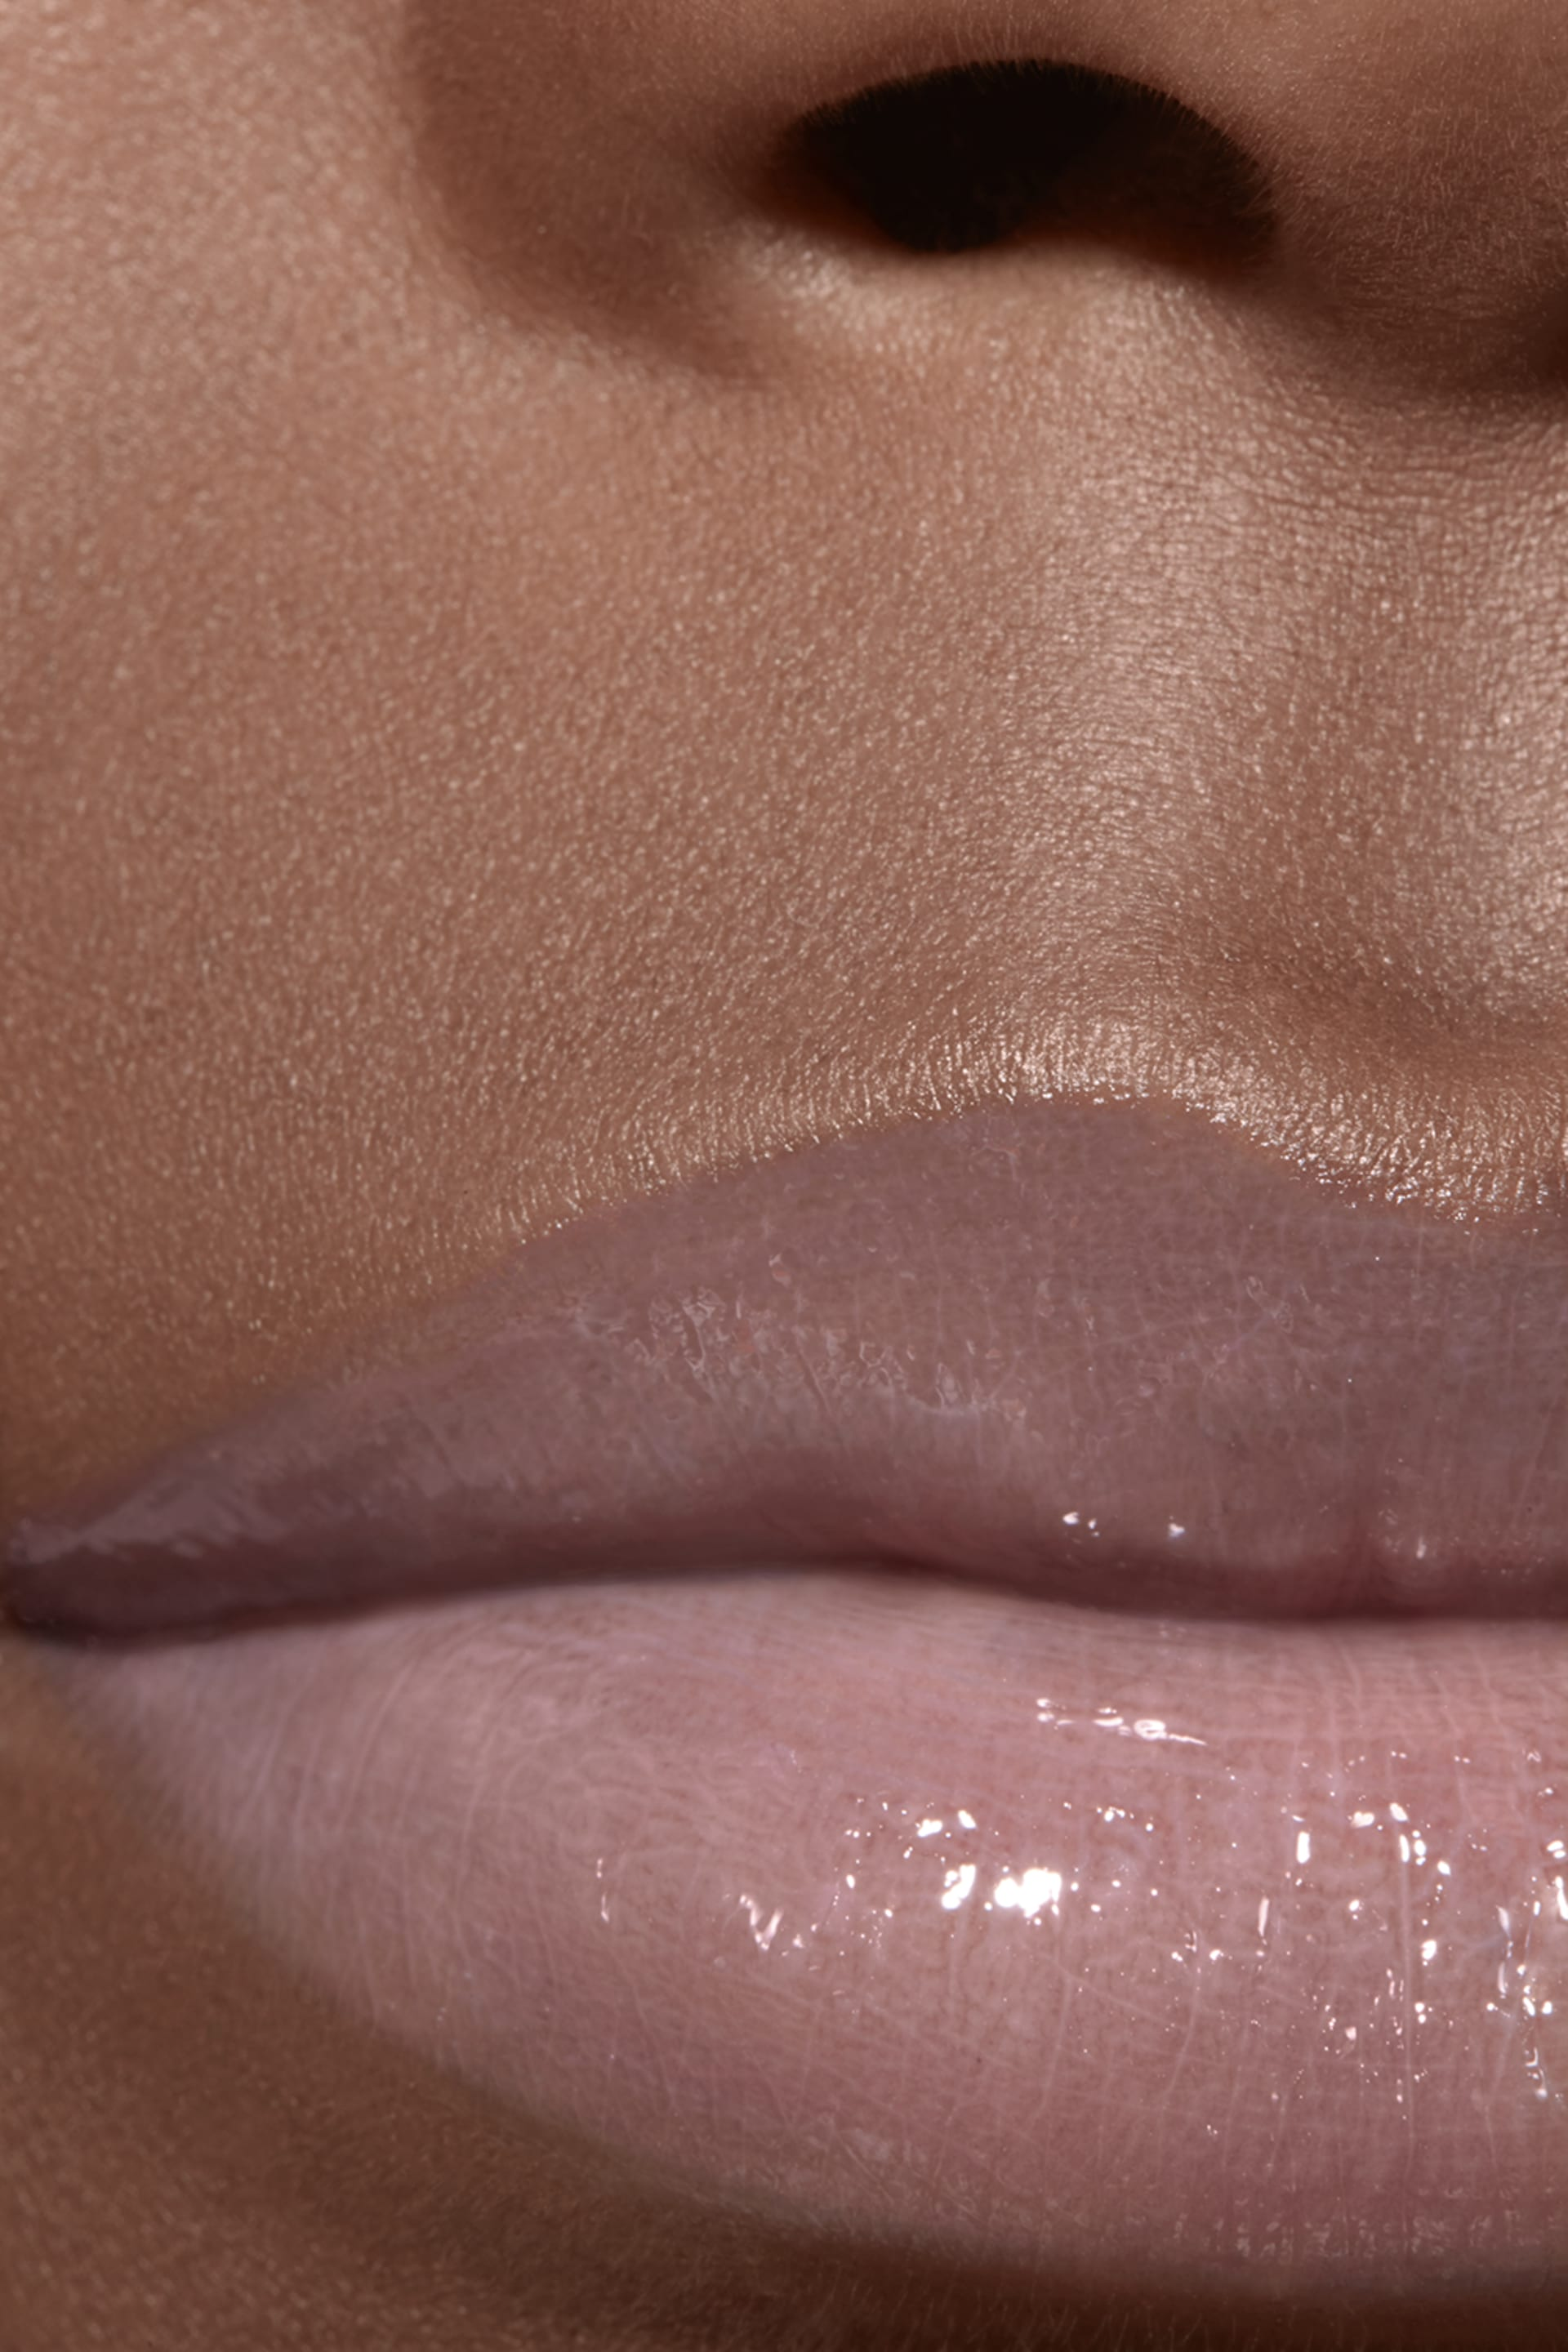 Application makeup visual 2 - ROUGE COCO GLOSS 726 - ICING